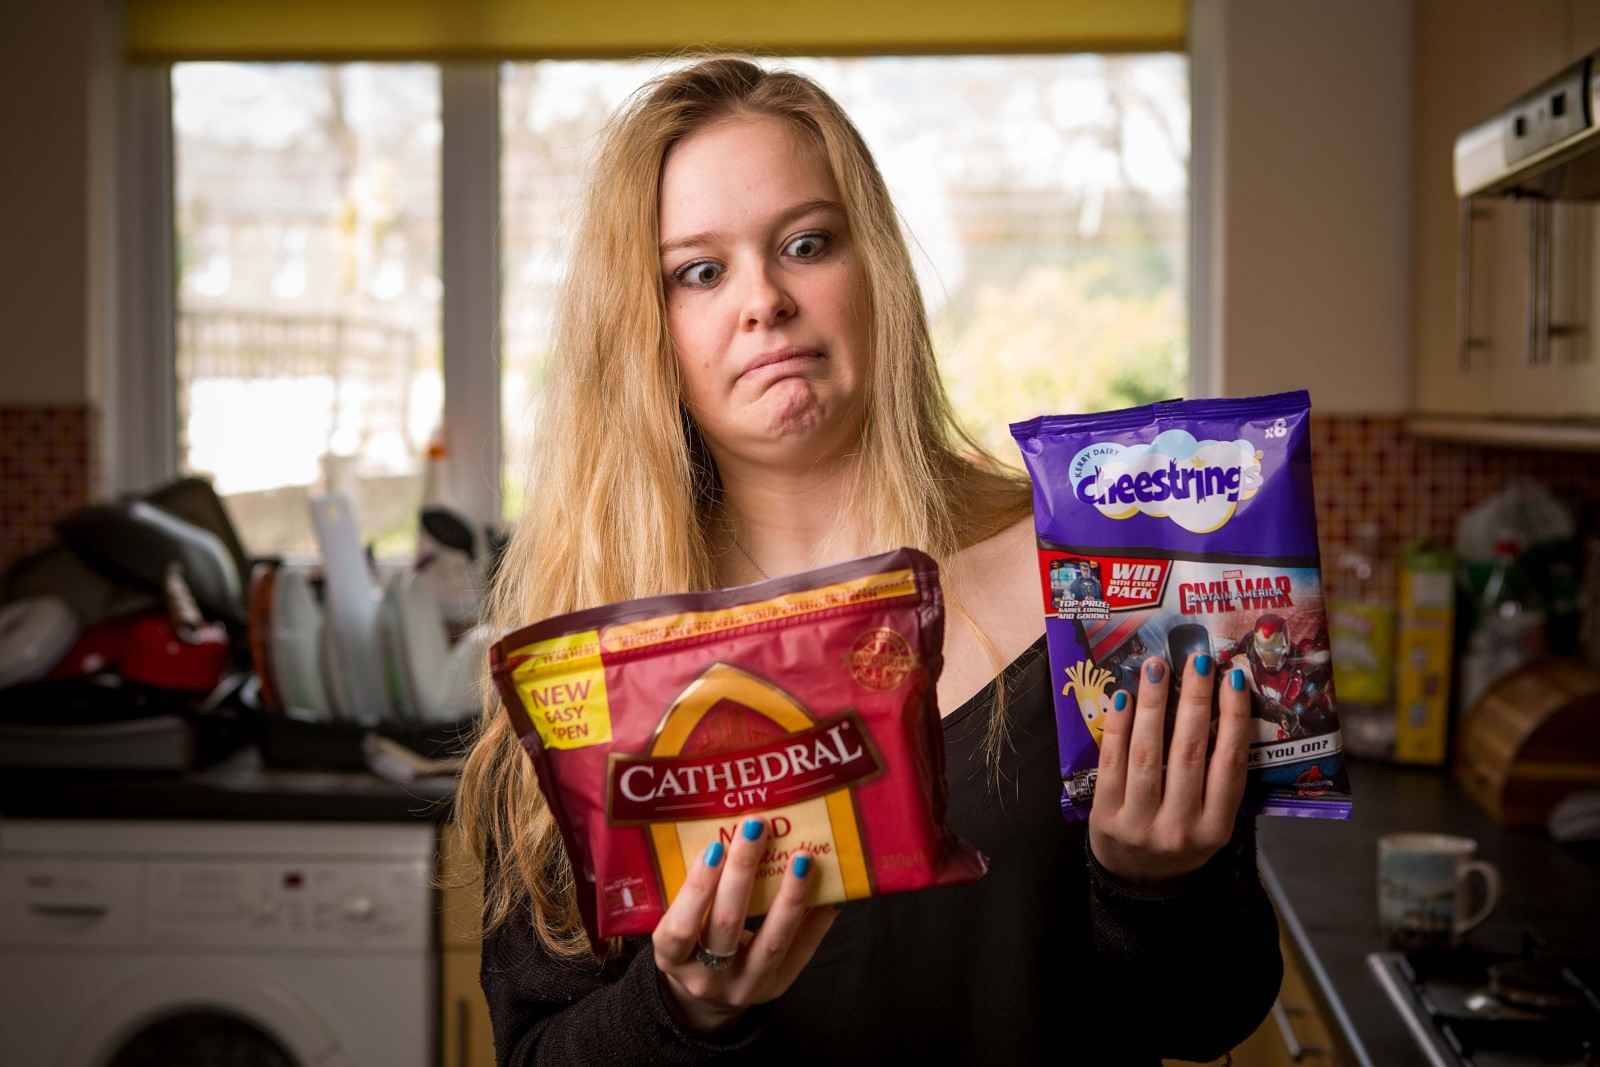 You feta keep that away from me – woman has paralysing fear of CHEESE